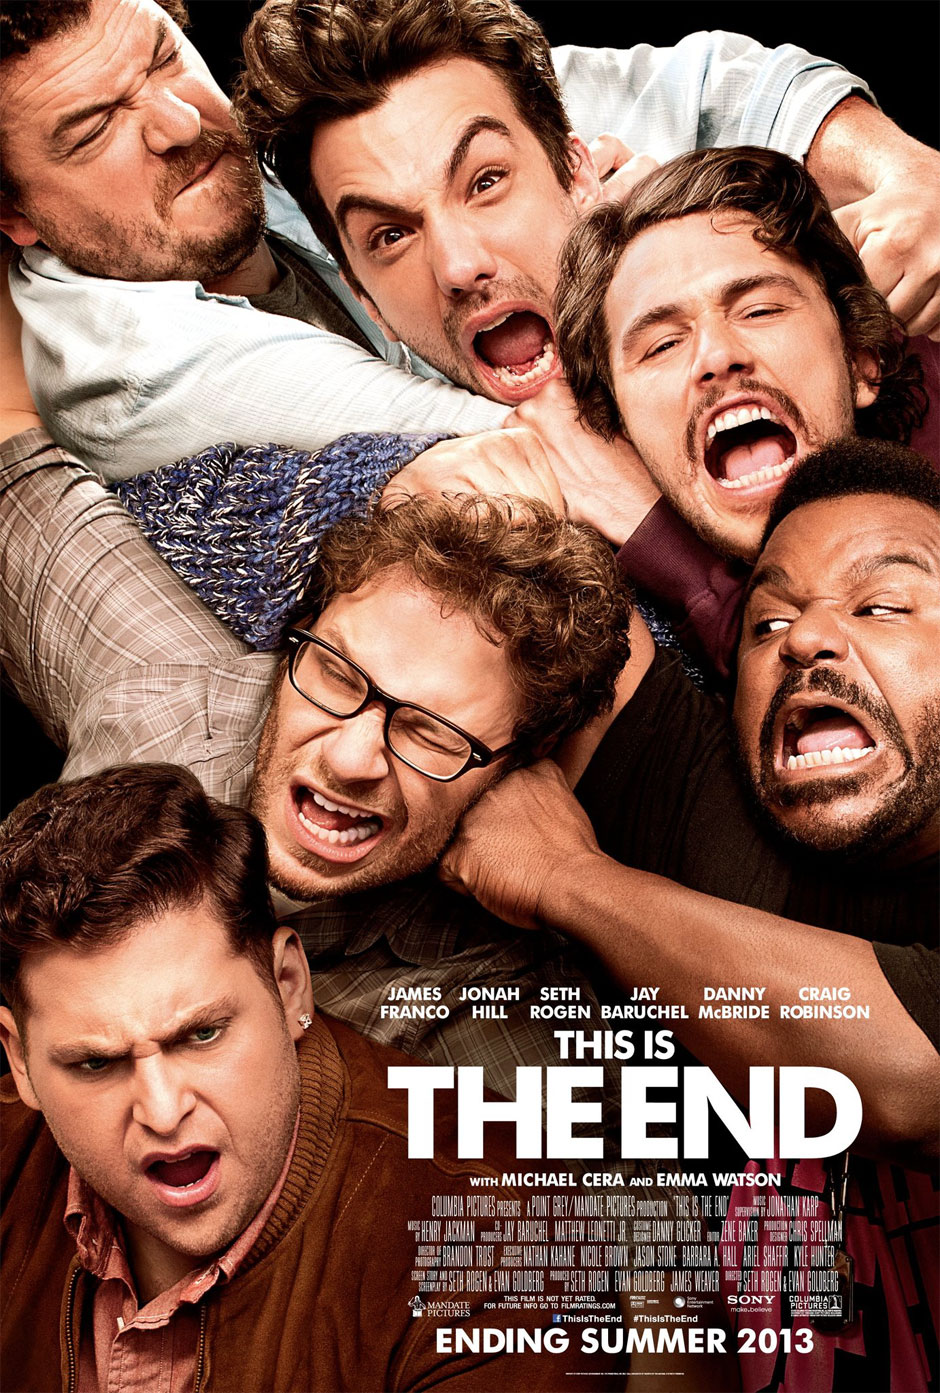 77 - This is the End (É o Fim)